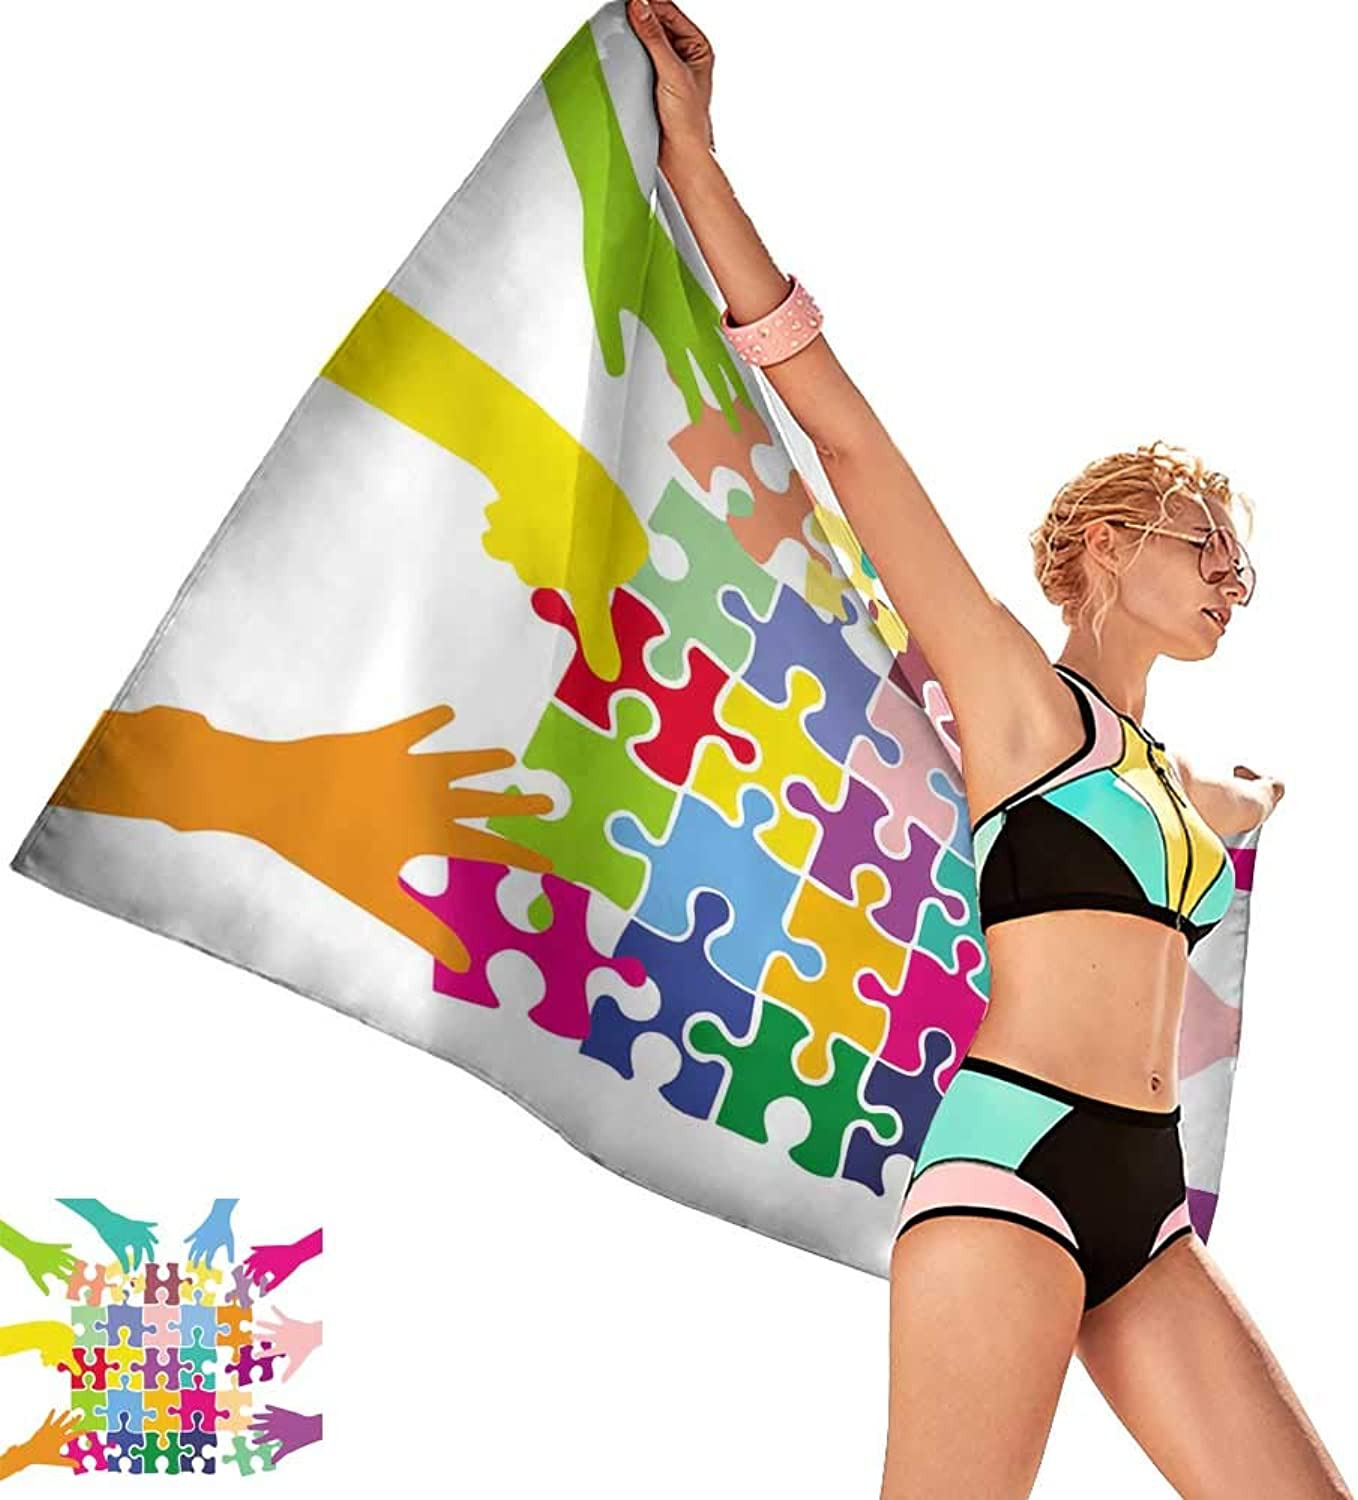 Homehot Sauna Towel Team Play with colorful Puzzle Pieces Social Games Mutual aid Various Characters,W28 xL55 for Youth Girls Cotton